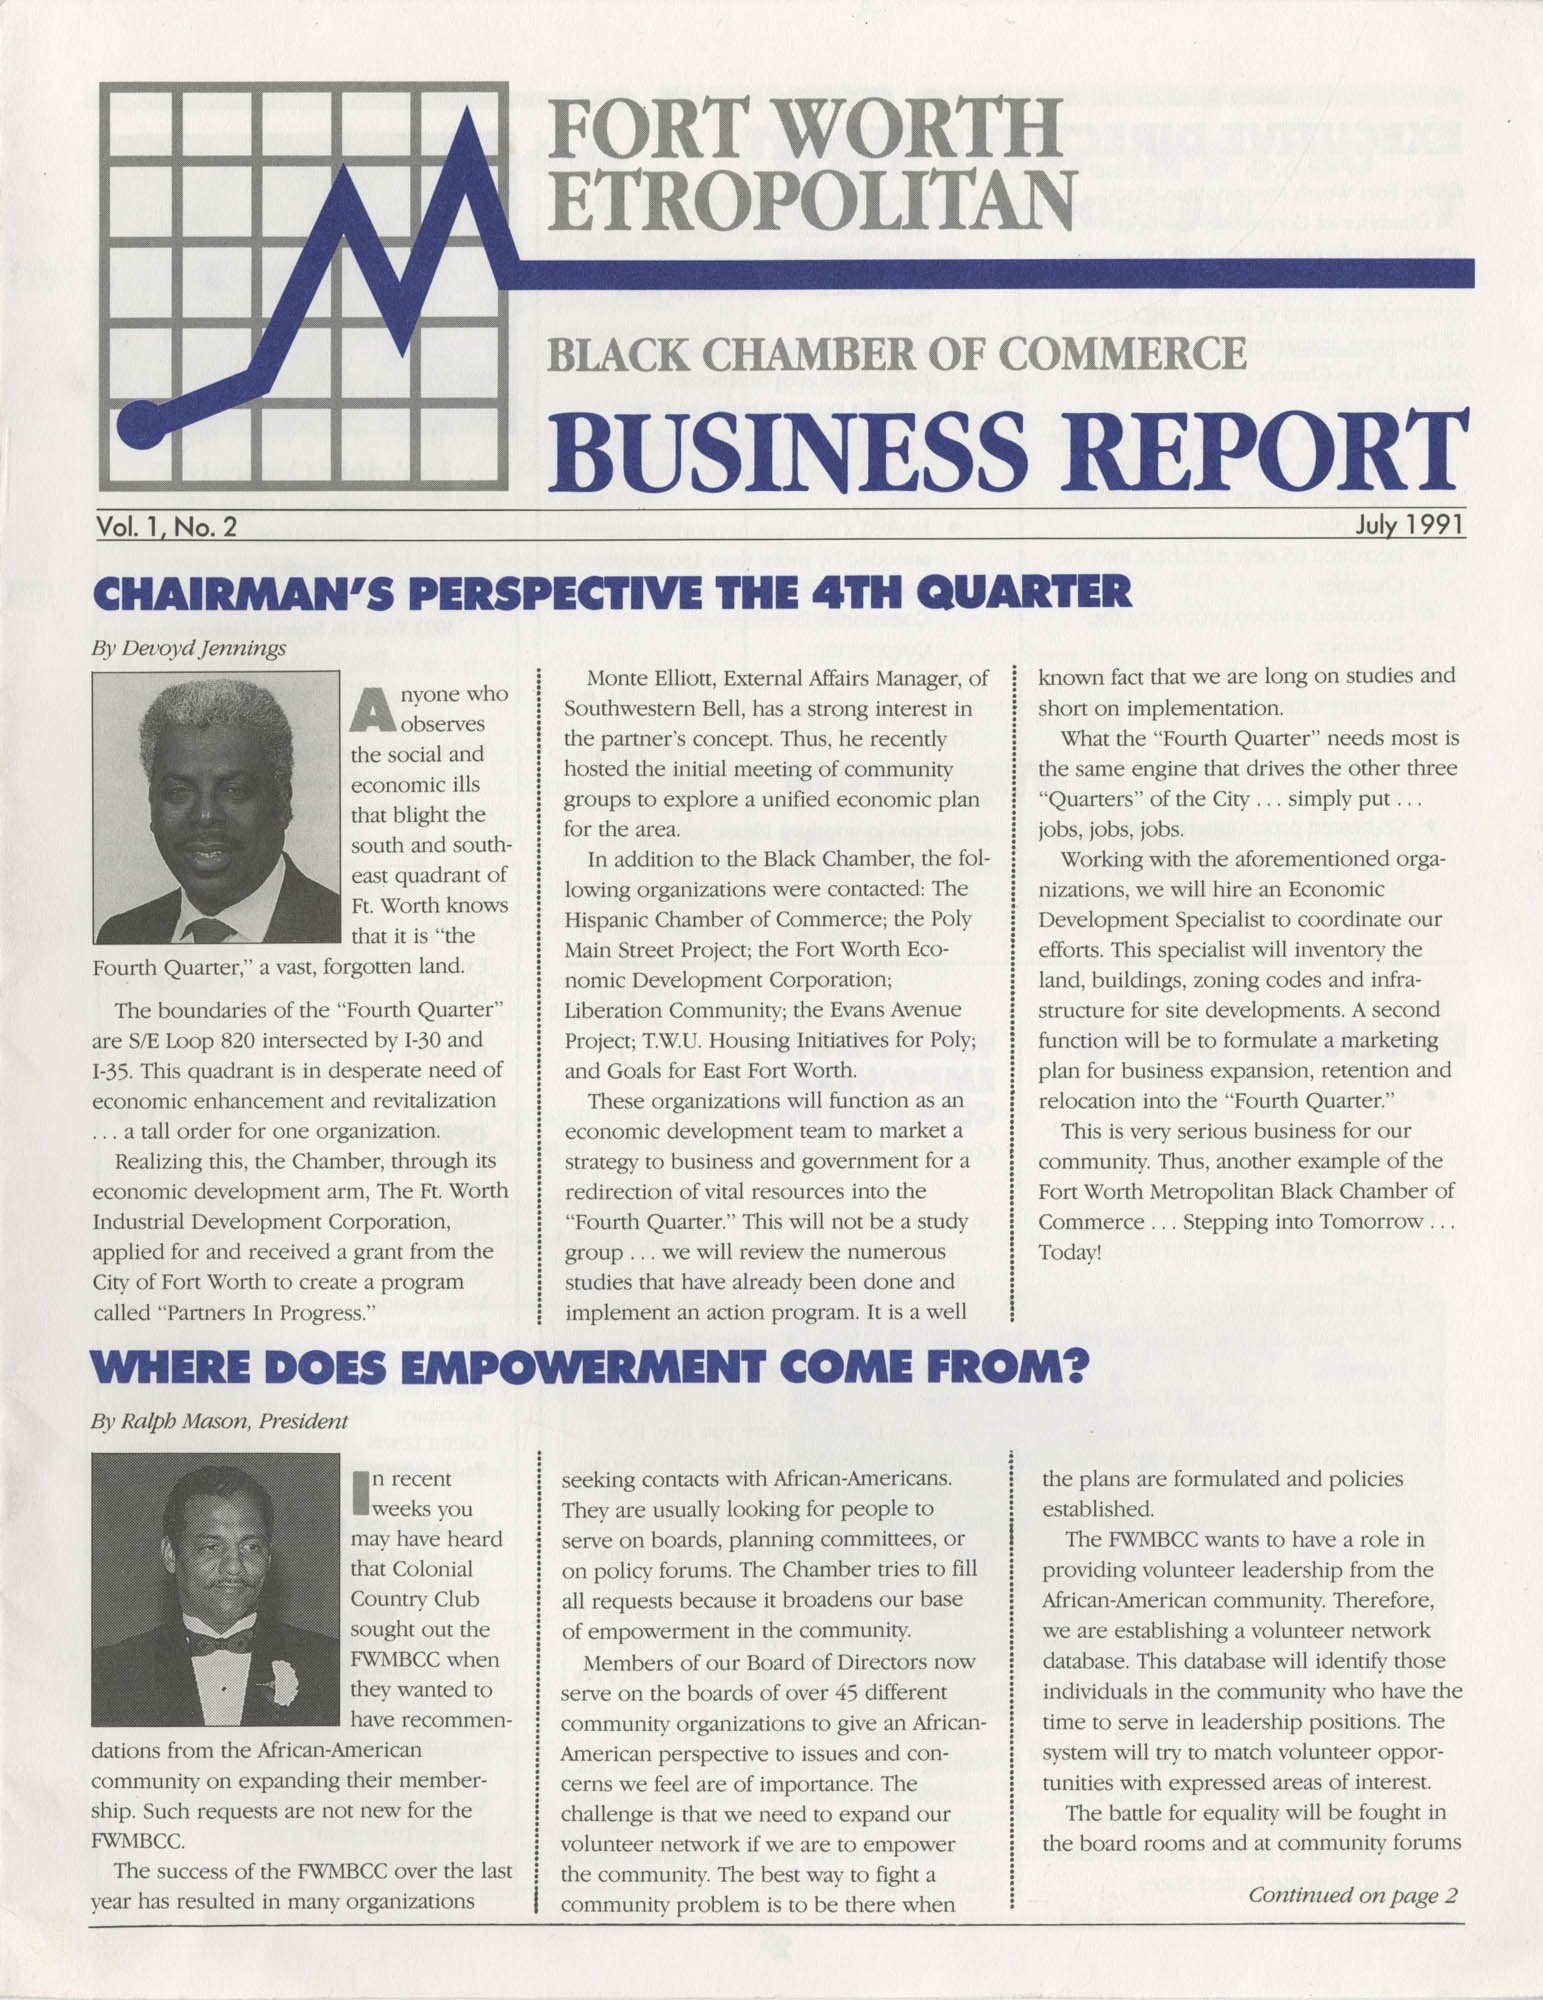 Fort Worth Metropolitan, Black Chamber of Commerce Business Report, July 1991